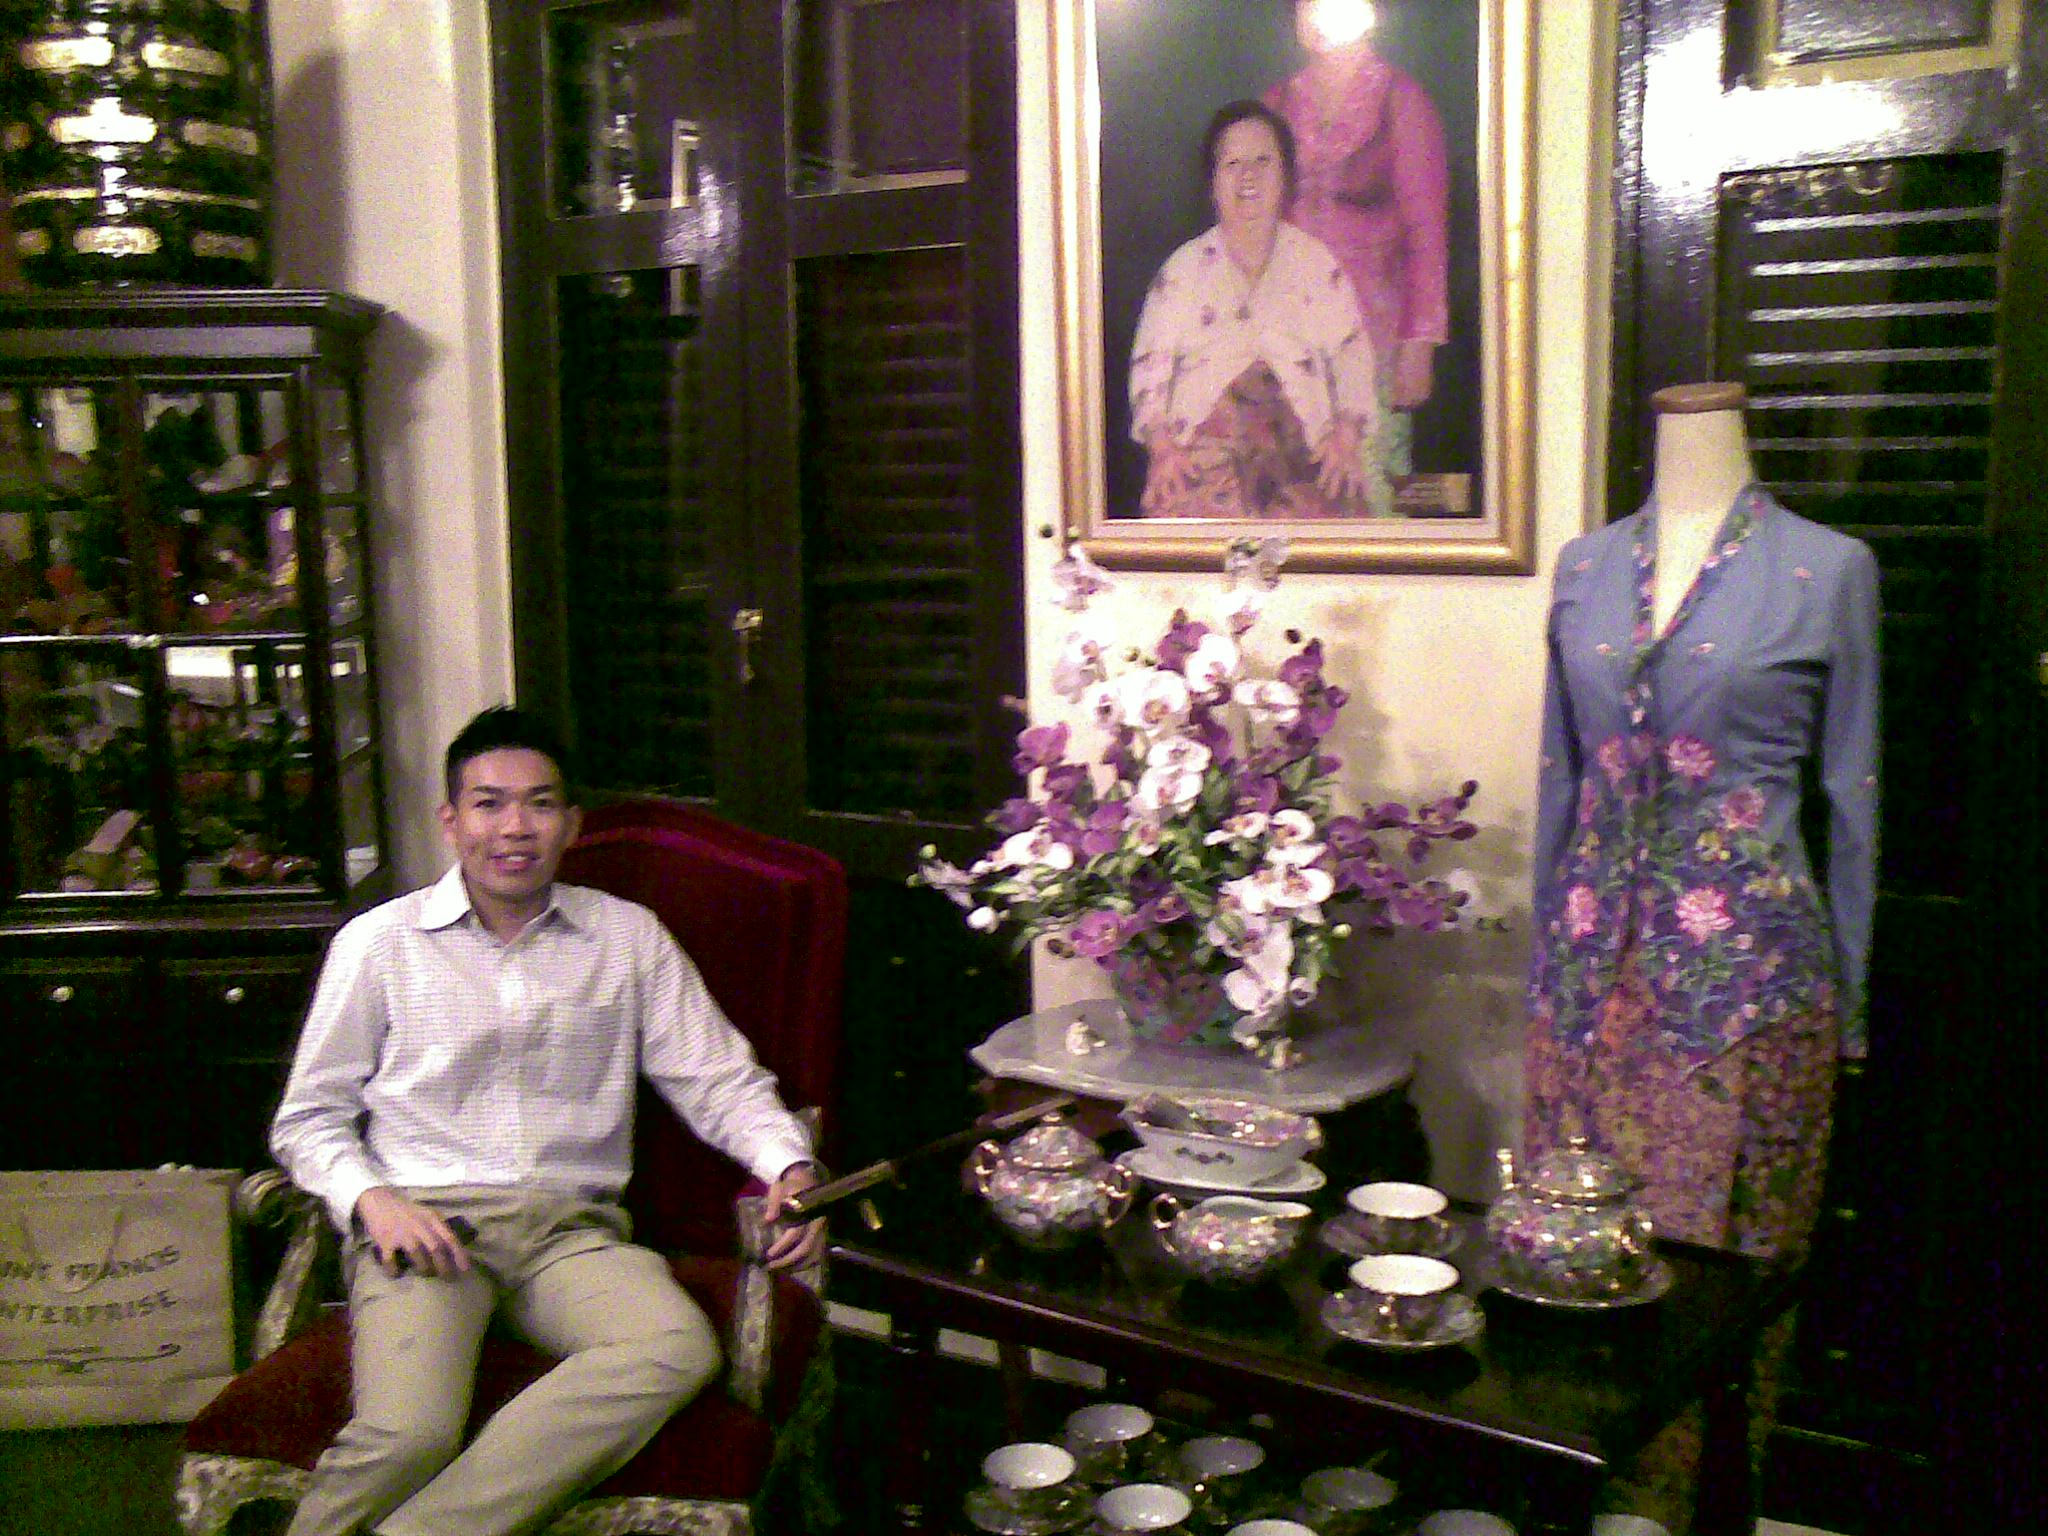 Kebaya & table wares displays